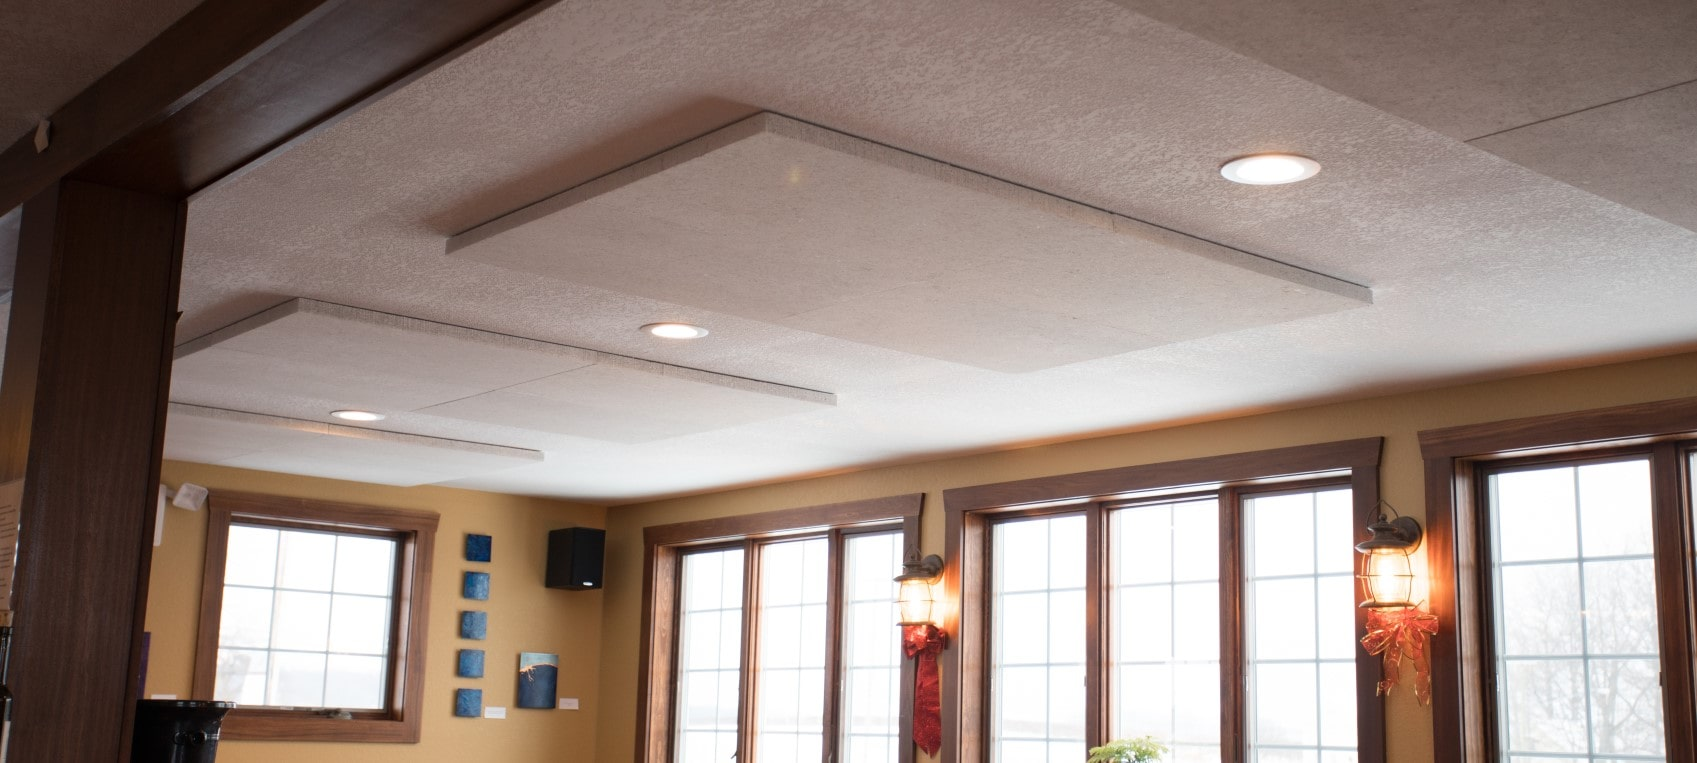 For Ceilings Acoustic Solutions